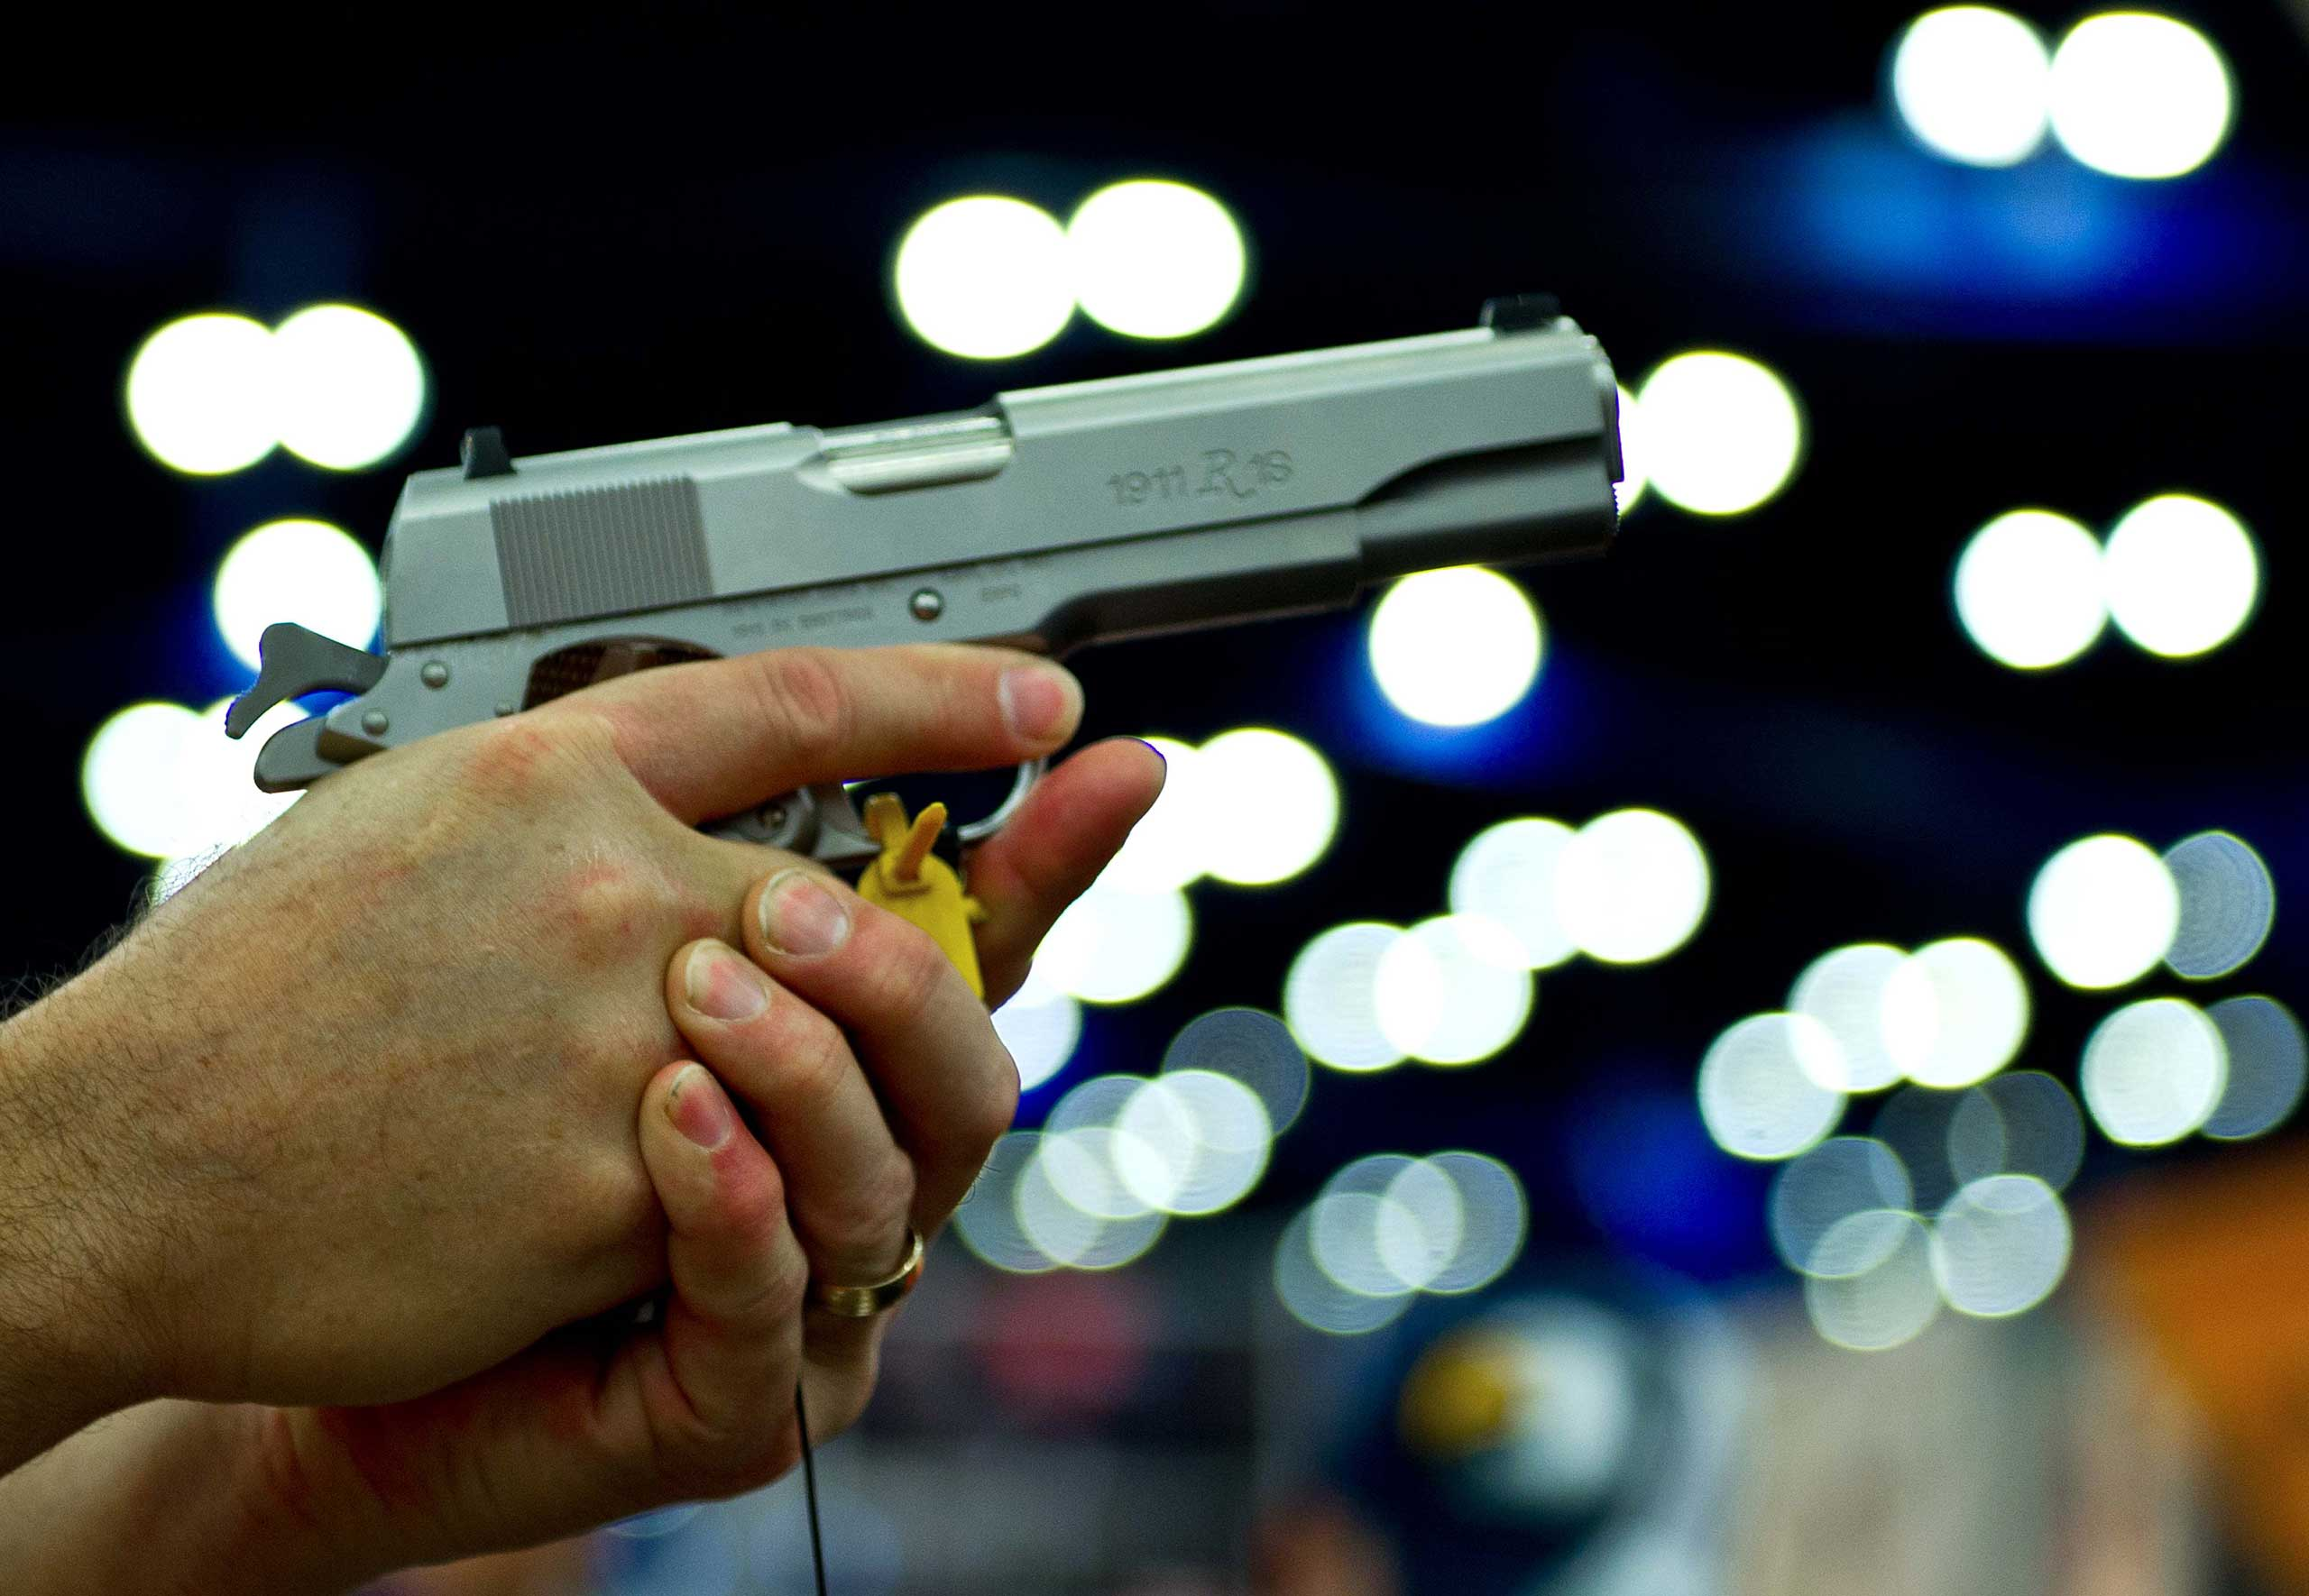 A convention goer handles a Ruger 1911 model semi-automatic pistol during the142nd annual National Rifle Association convention at the George R. Brown Convention Center on May 4, 2013 in Houston.